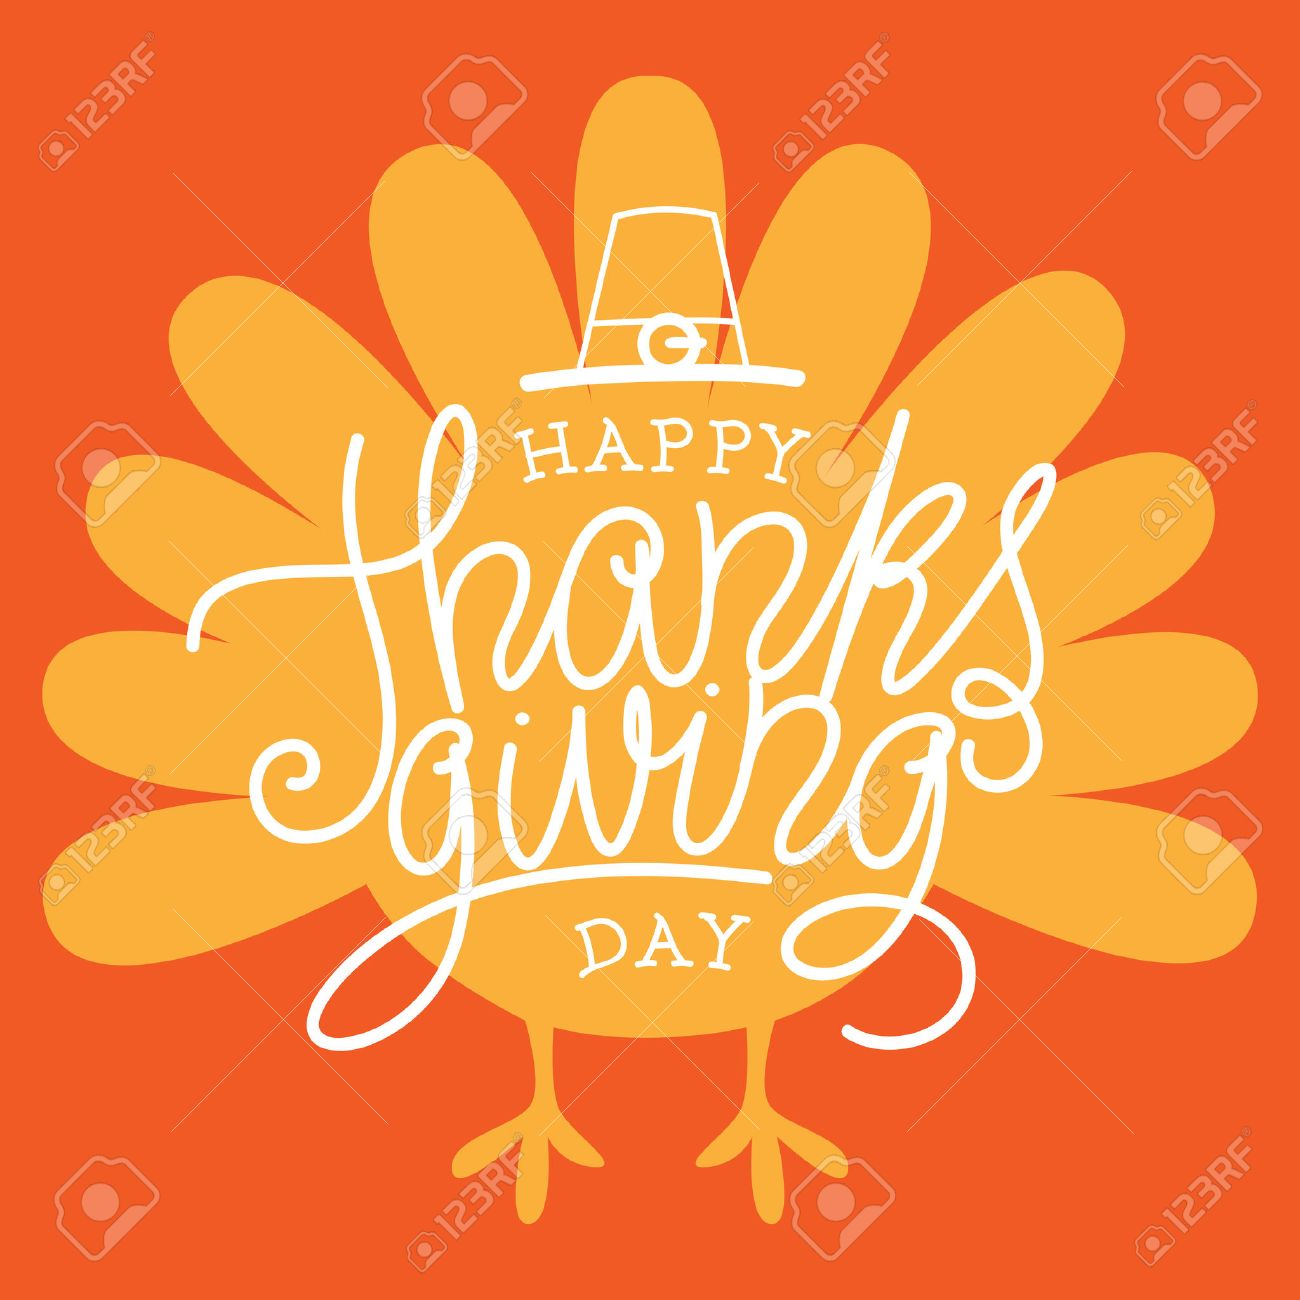 Happy Thanksgiving Day >> Happy Thanksgiving Day Vector Illustration With Hand Lettered